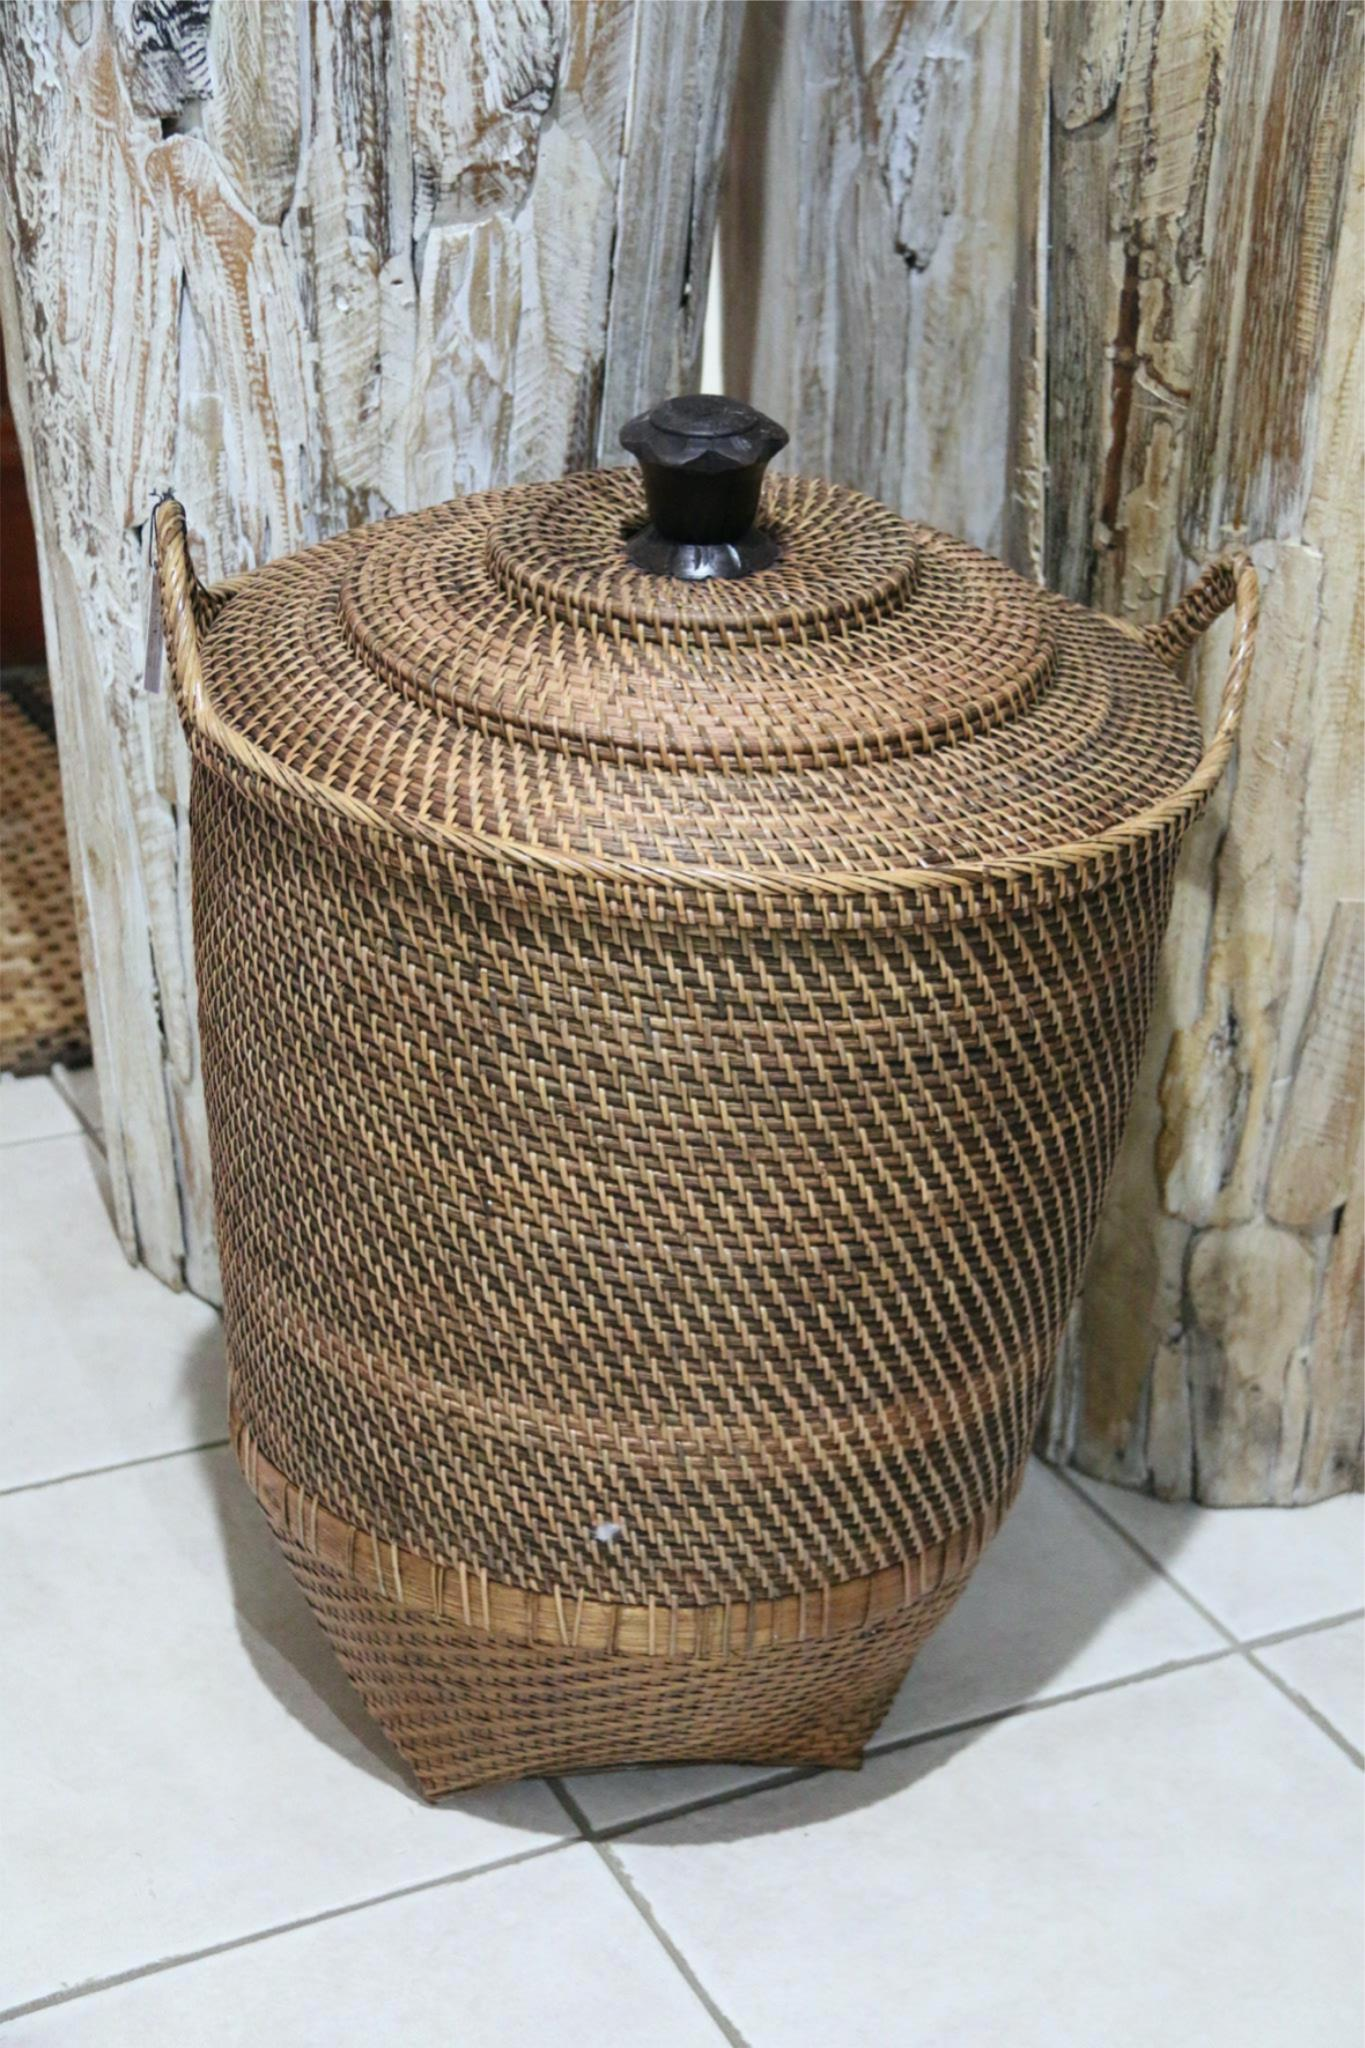 NEW Balinese Hand Woven Rattan Laundry Basket / Bali Rattan Basket with Lid